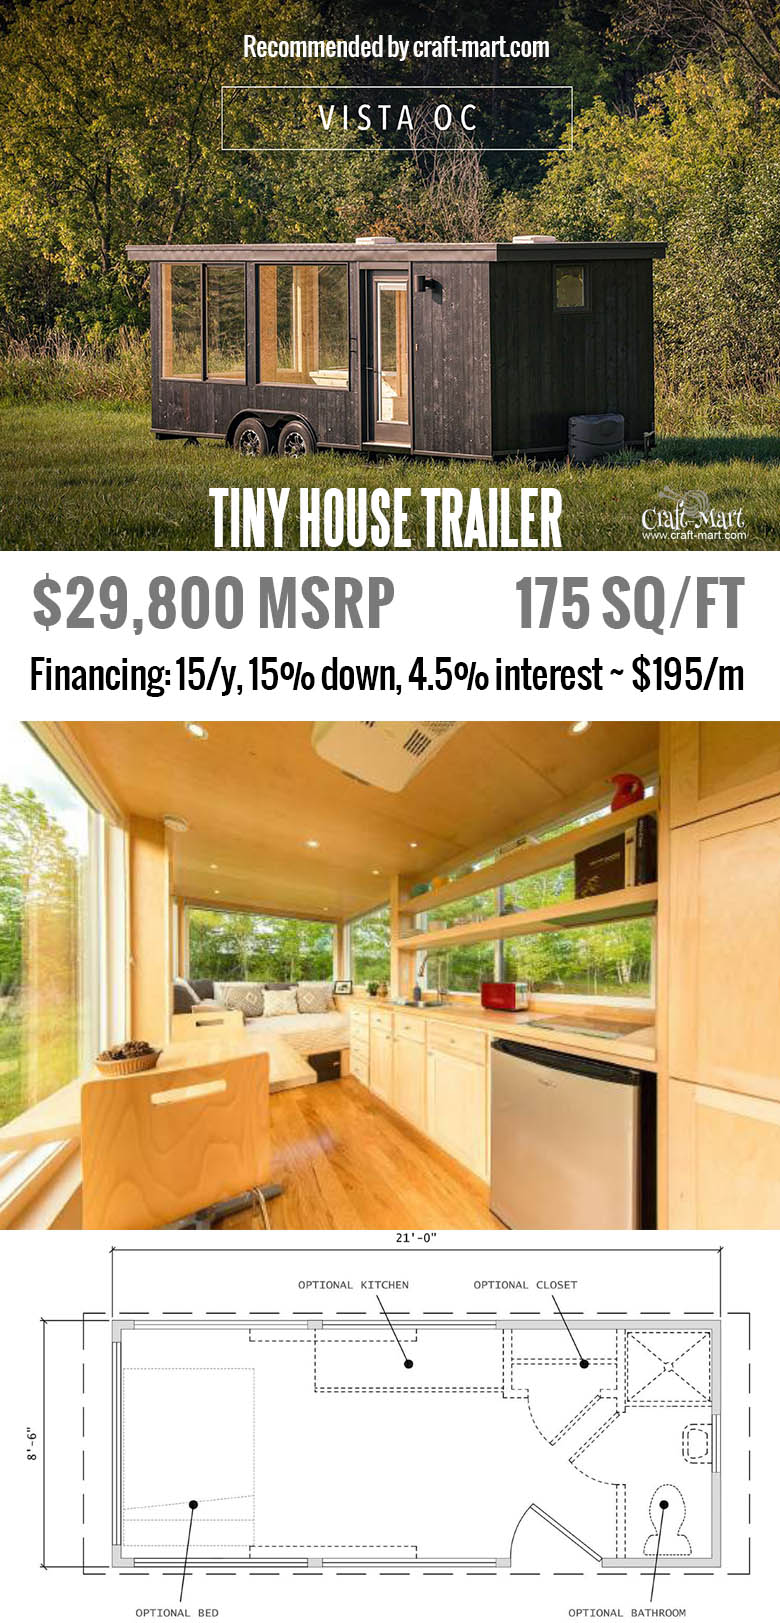 One of the most affordable and beautiful tiny houses. Get one of these for FREE and start earning money from renting it! Or simply buy one of the most beautiful tiny house trailers with easy financing starting from $195/m! #tinyhouse #tinyhouseplans #minimalism